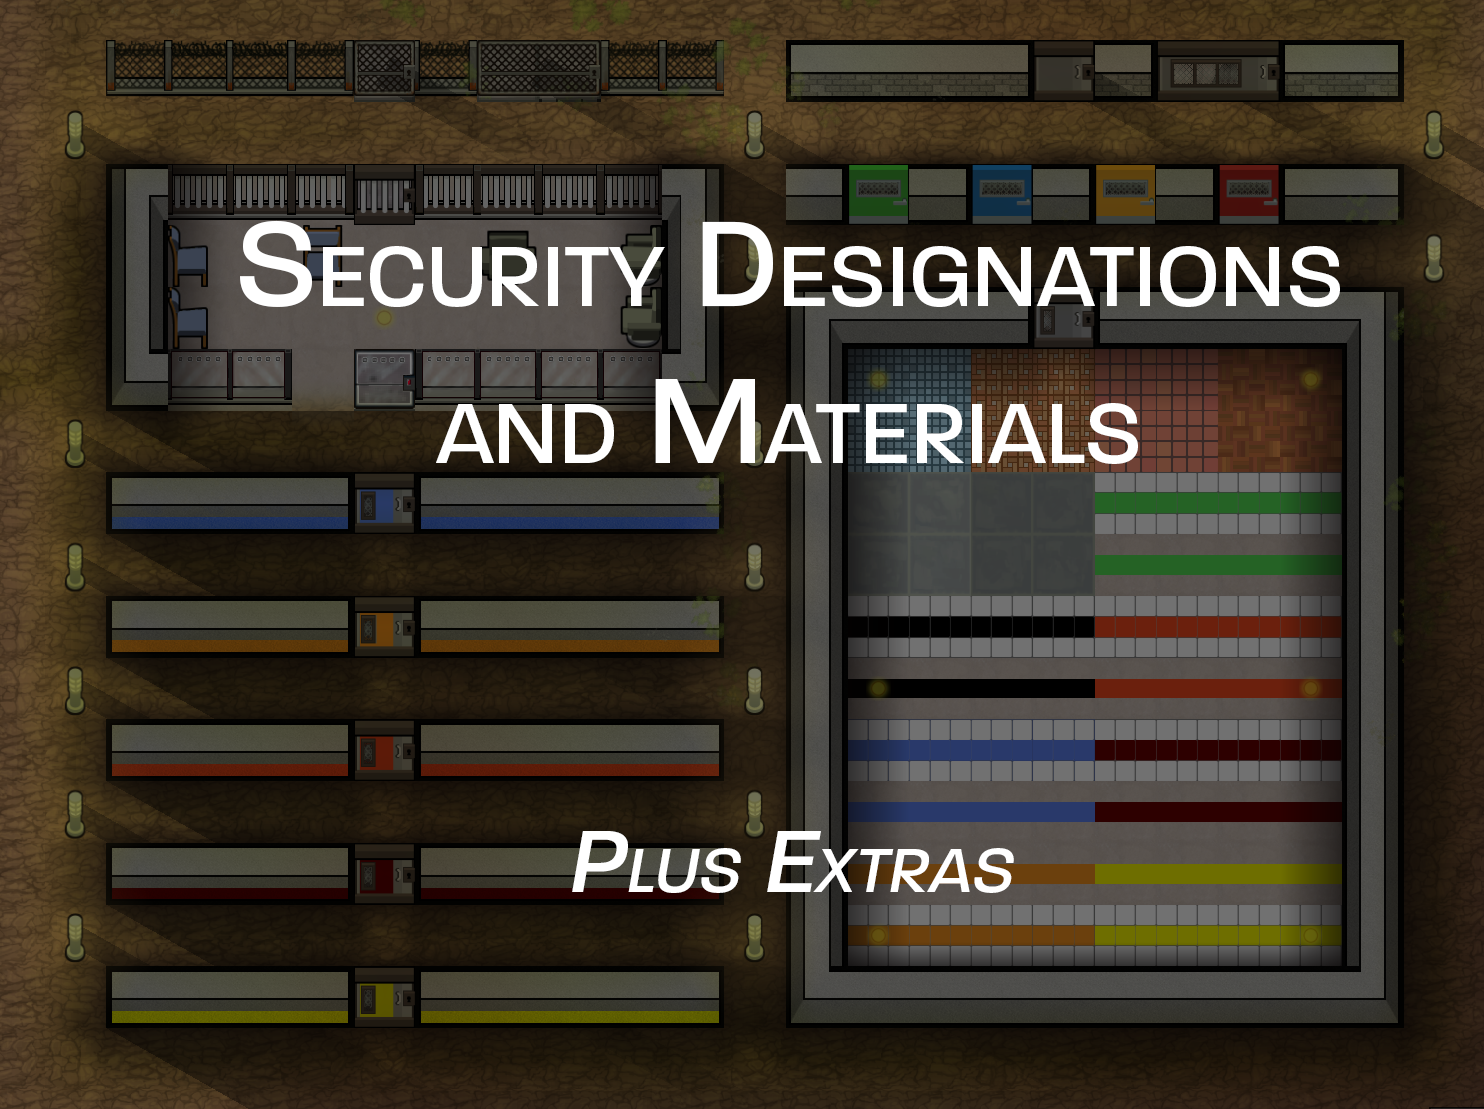 Security Designations and Materials